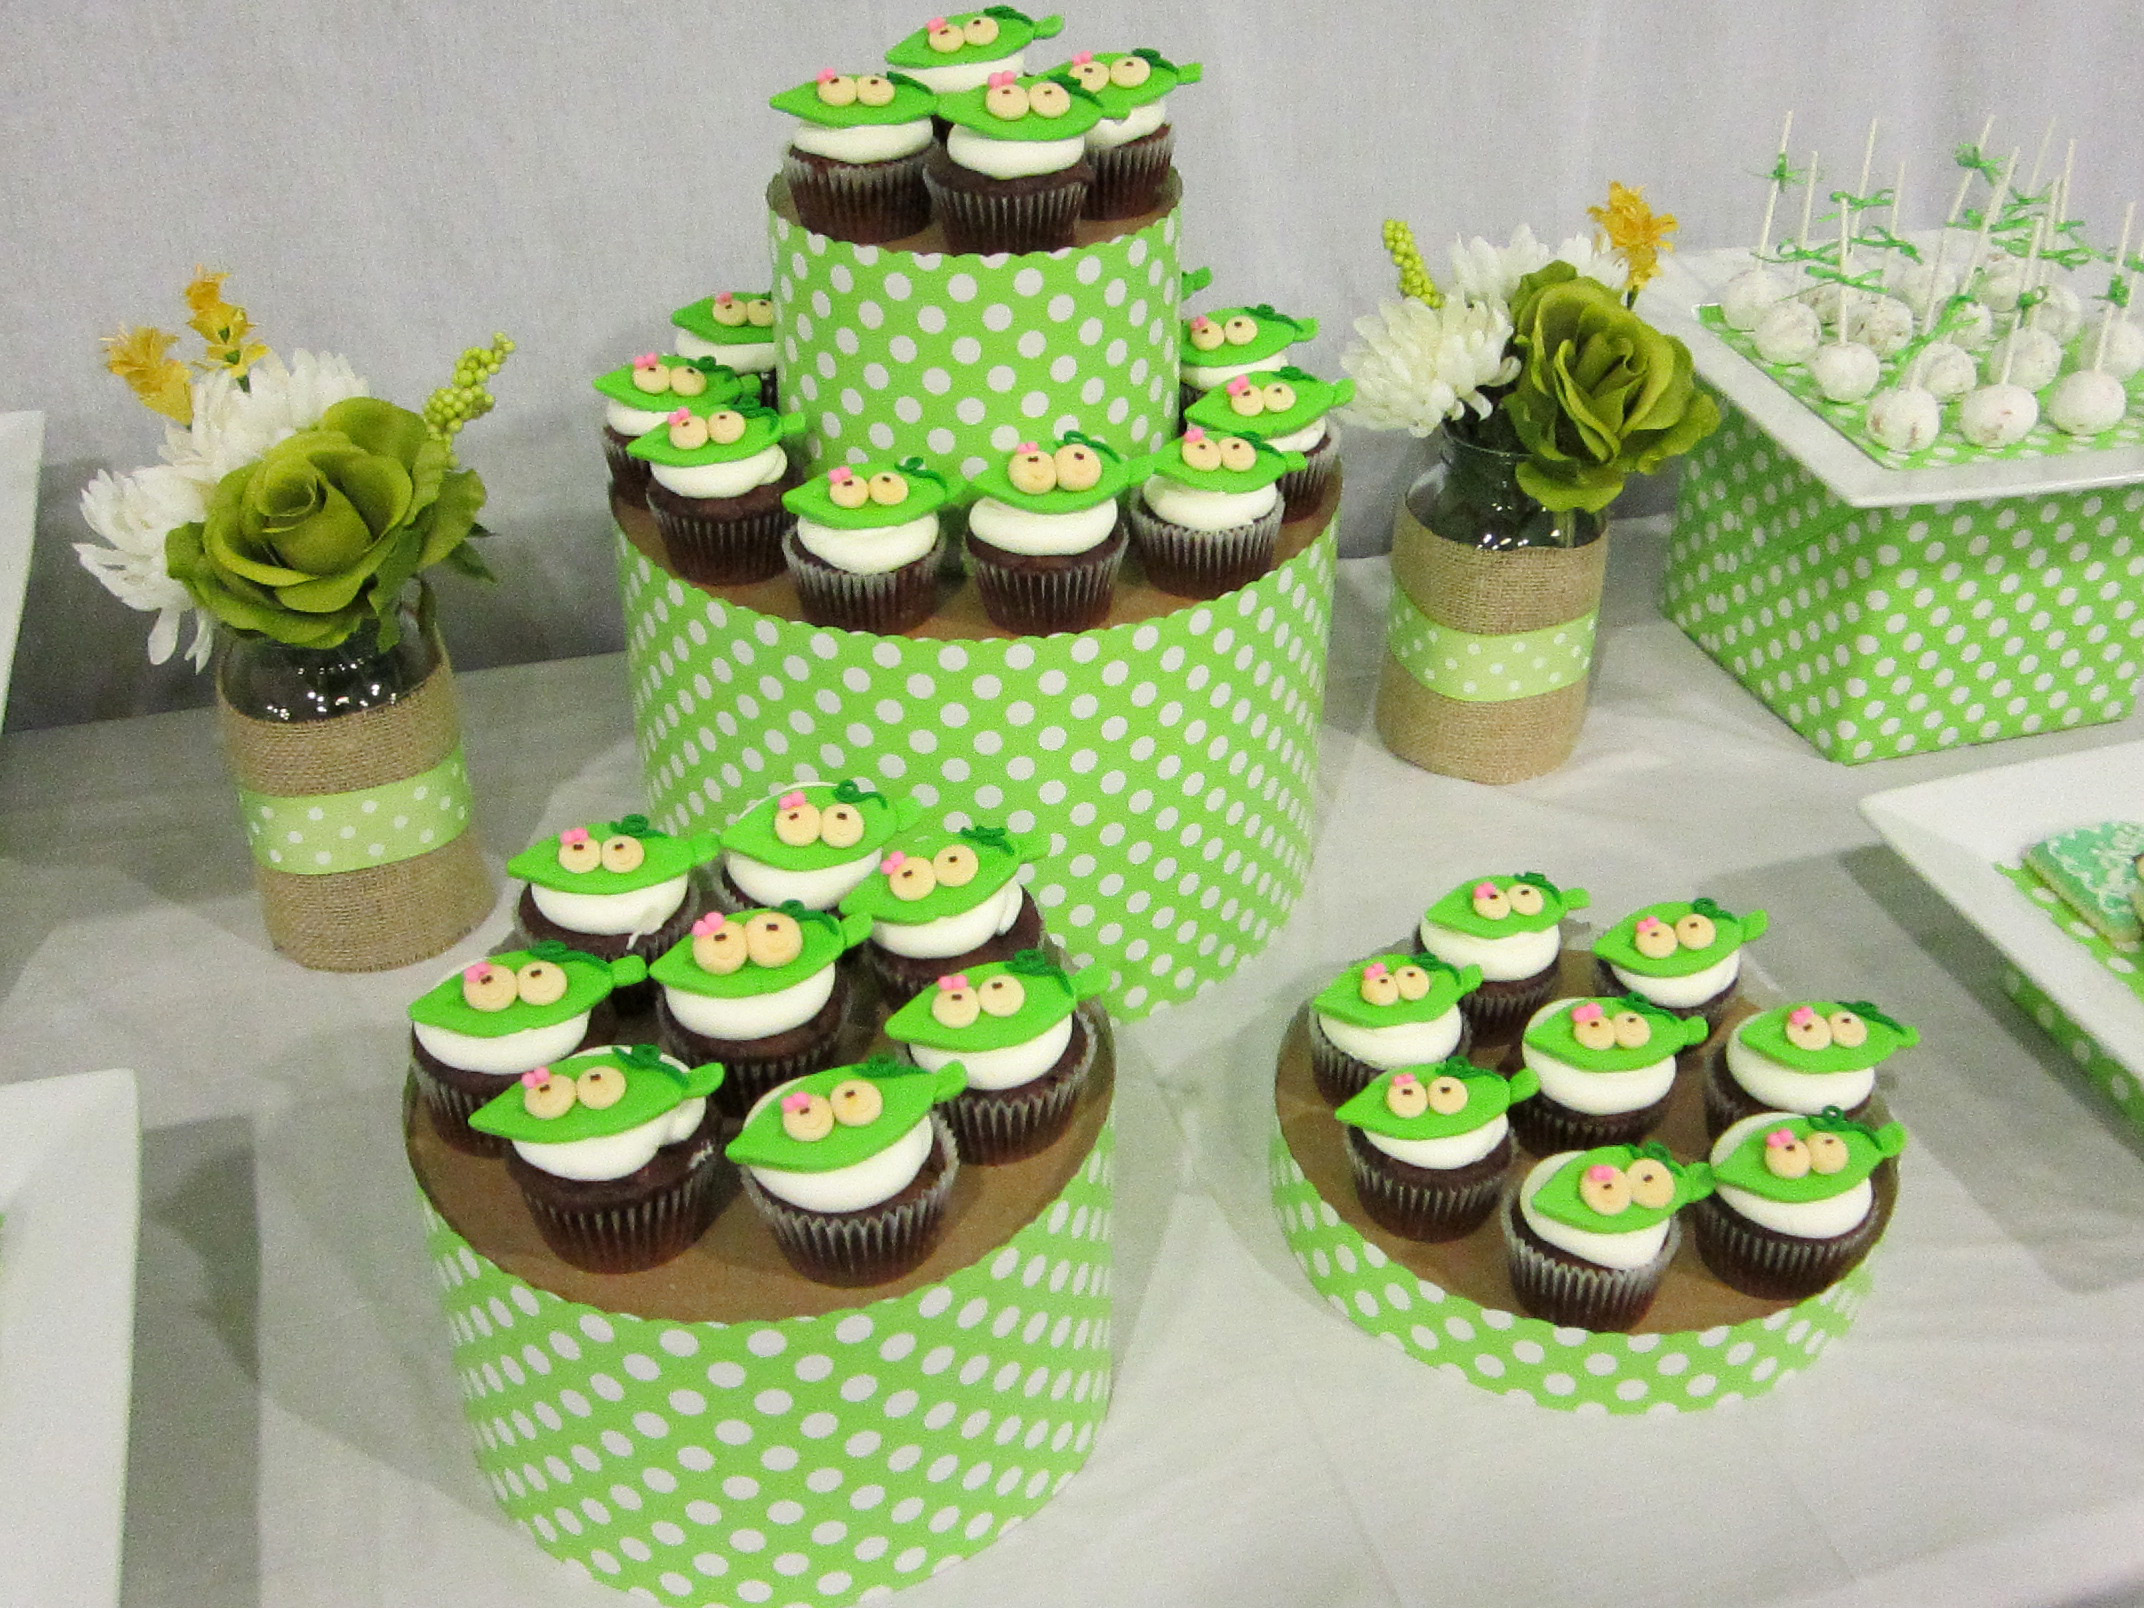 DIY Hat Box Cupcake Tower Tutorial  A Blissful Nest